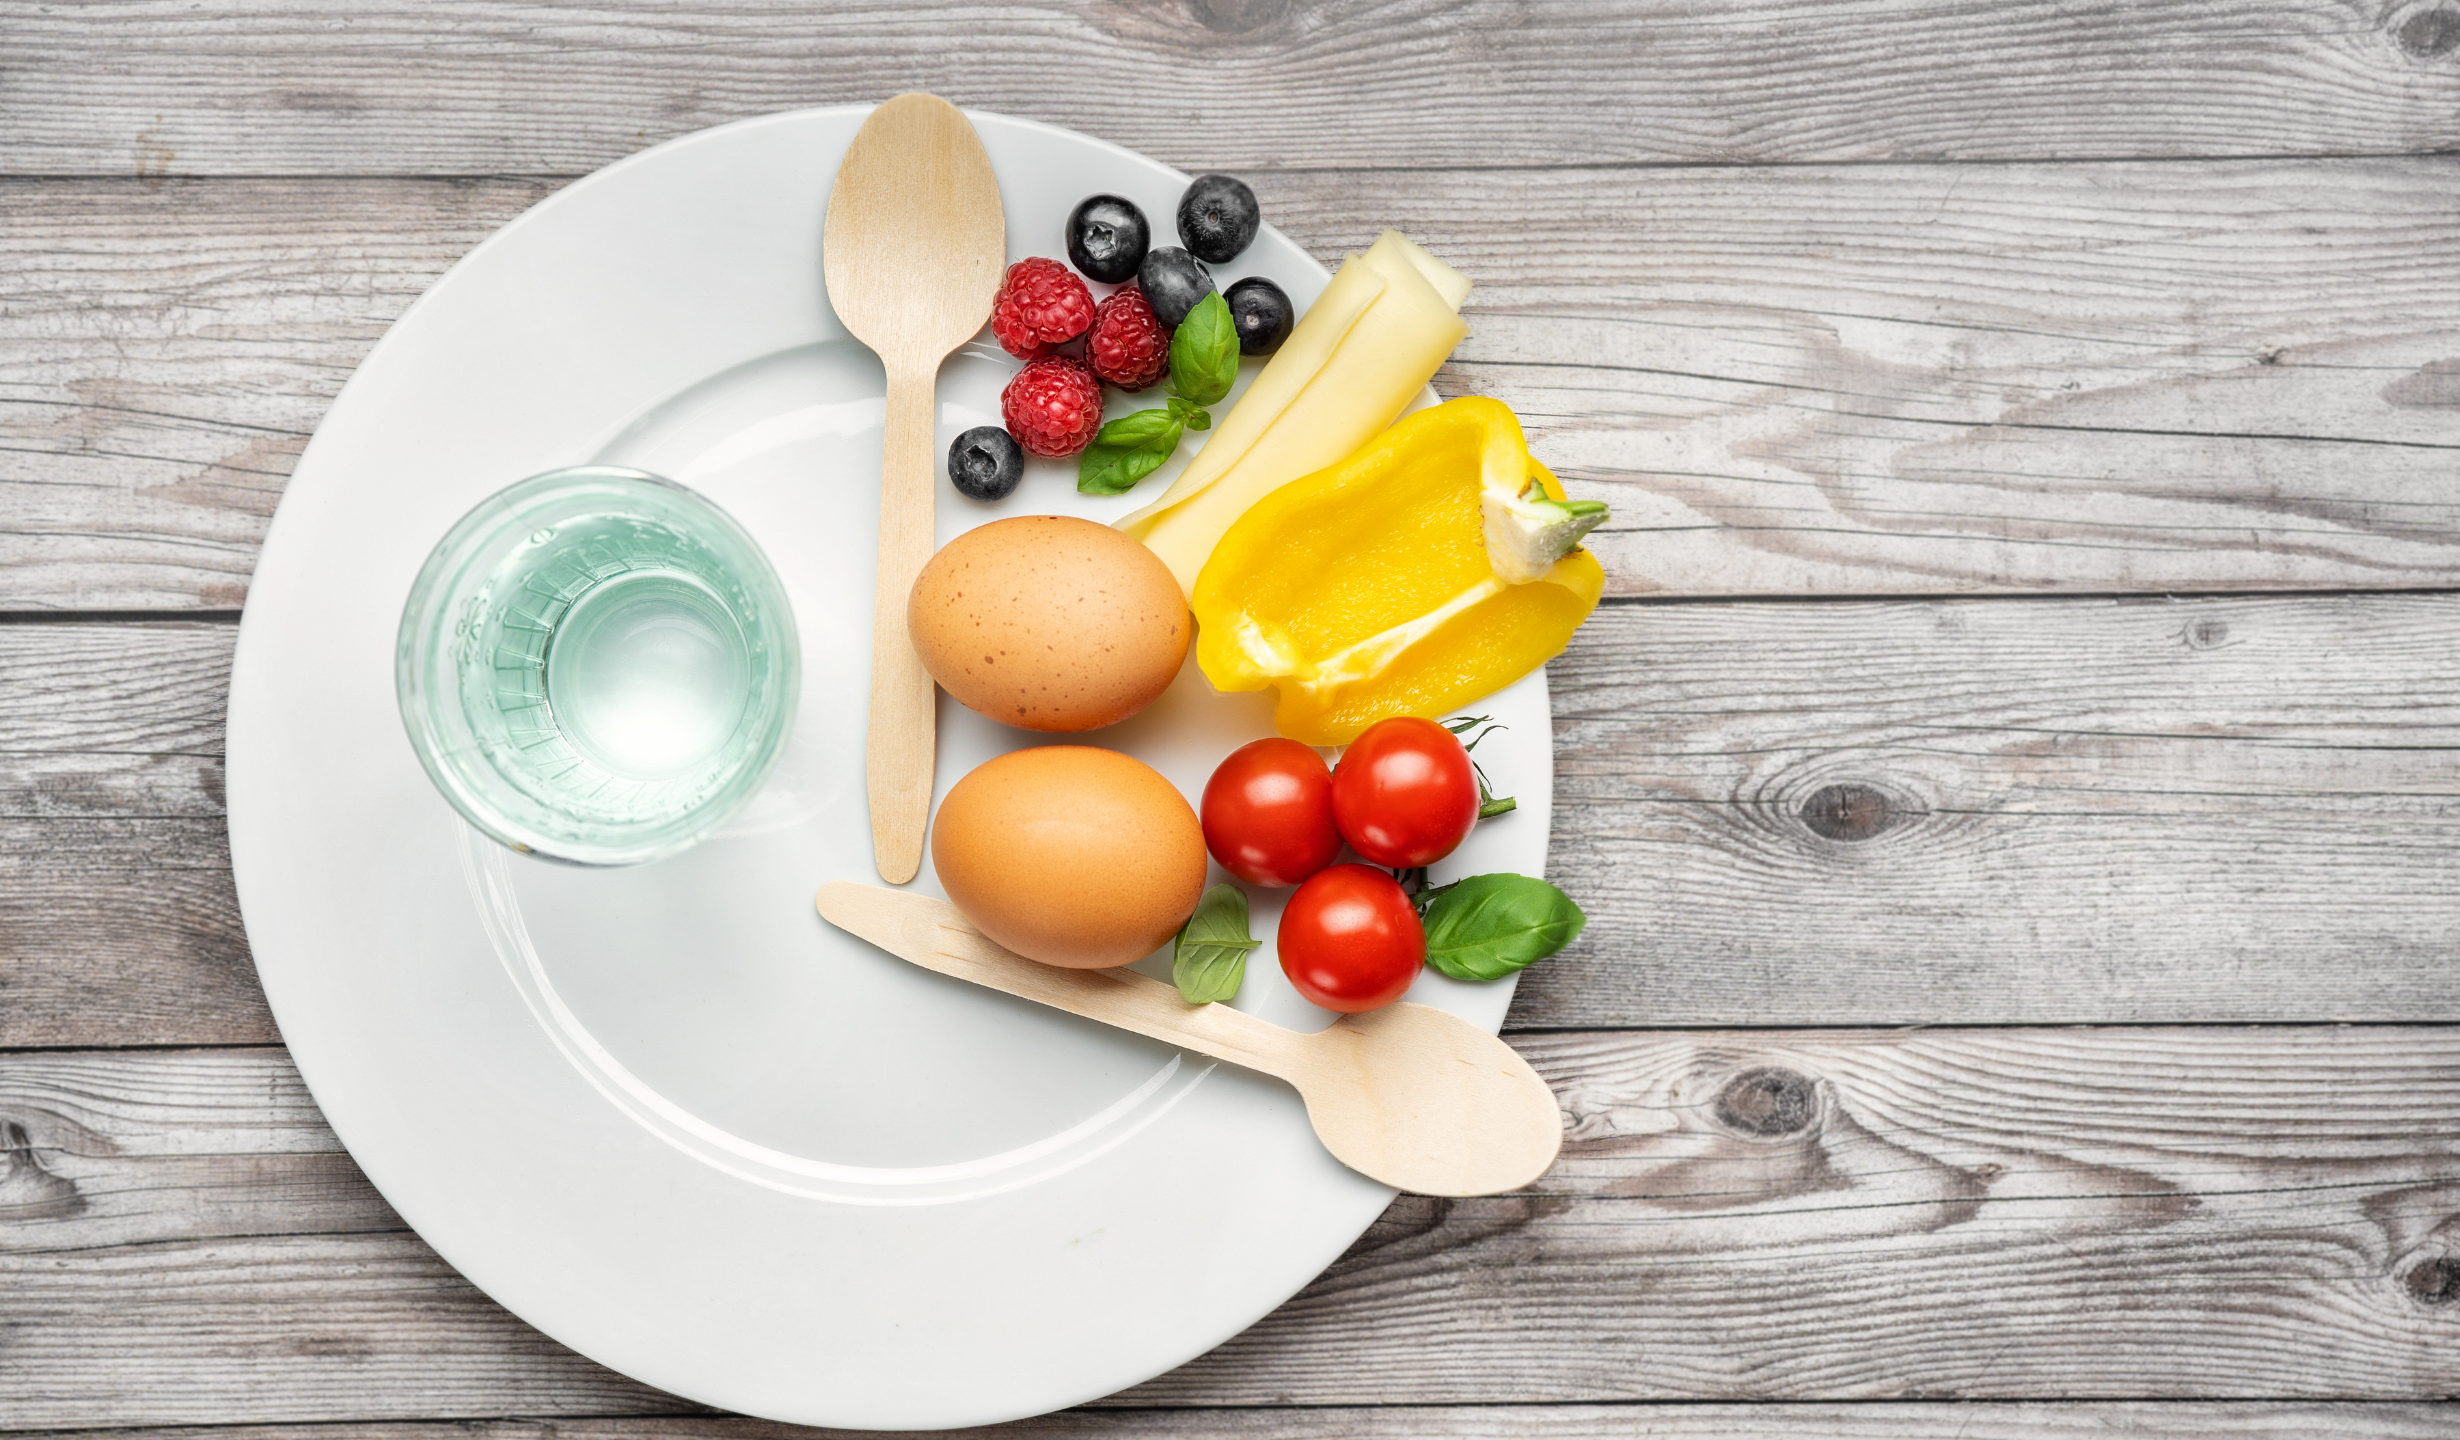 Over 10,000 Clients Swear This Intermittent Fasting